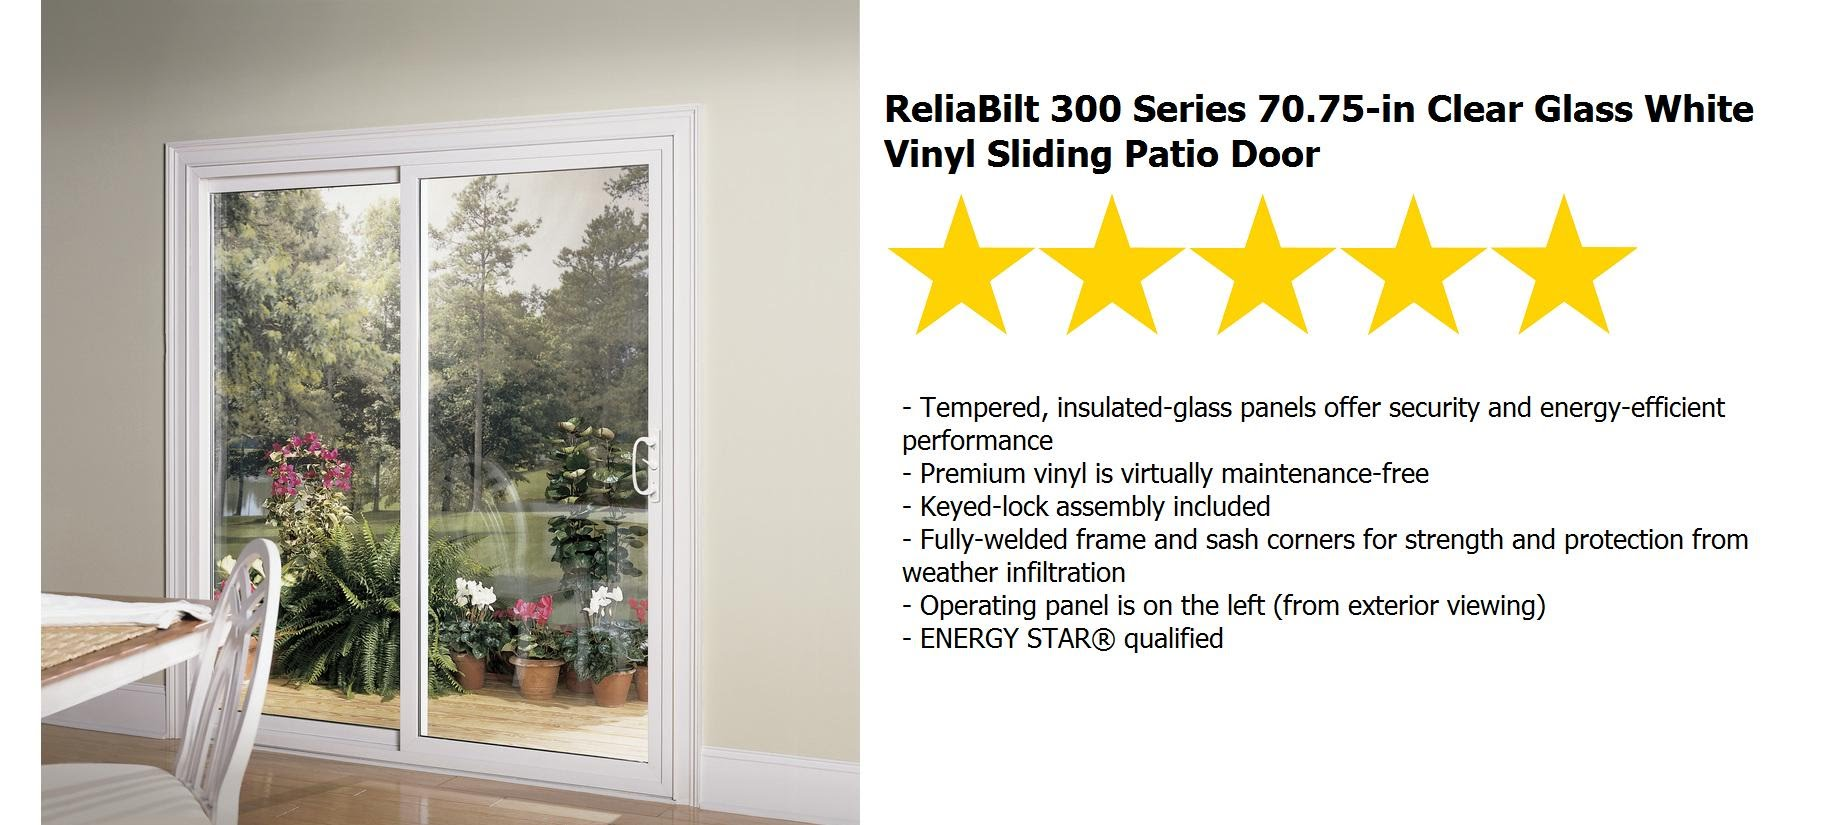 Steel Door | Lowes Interior French Doors | Reliabilt Doors Review